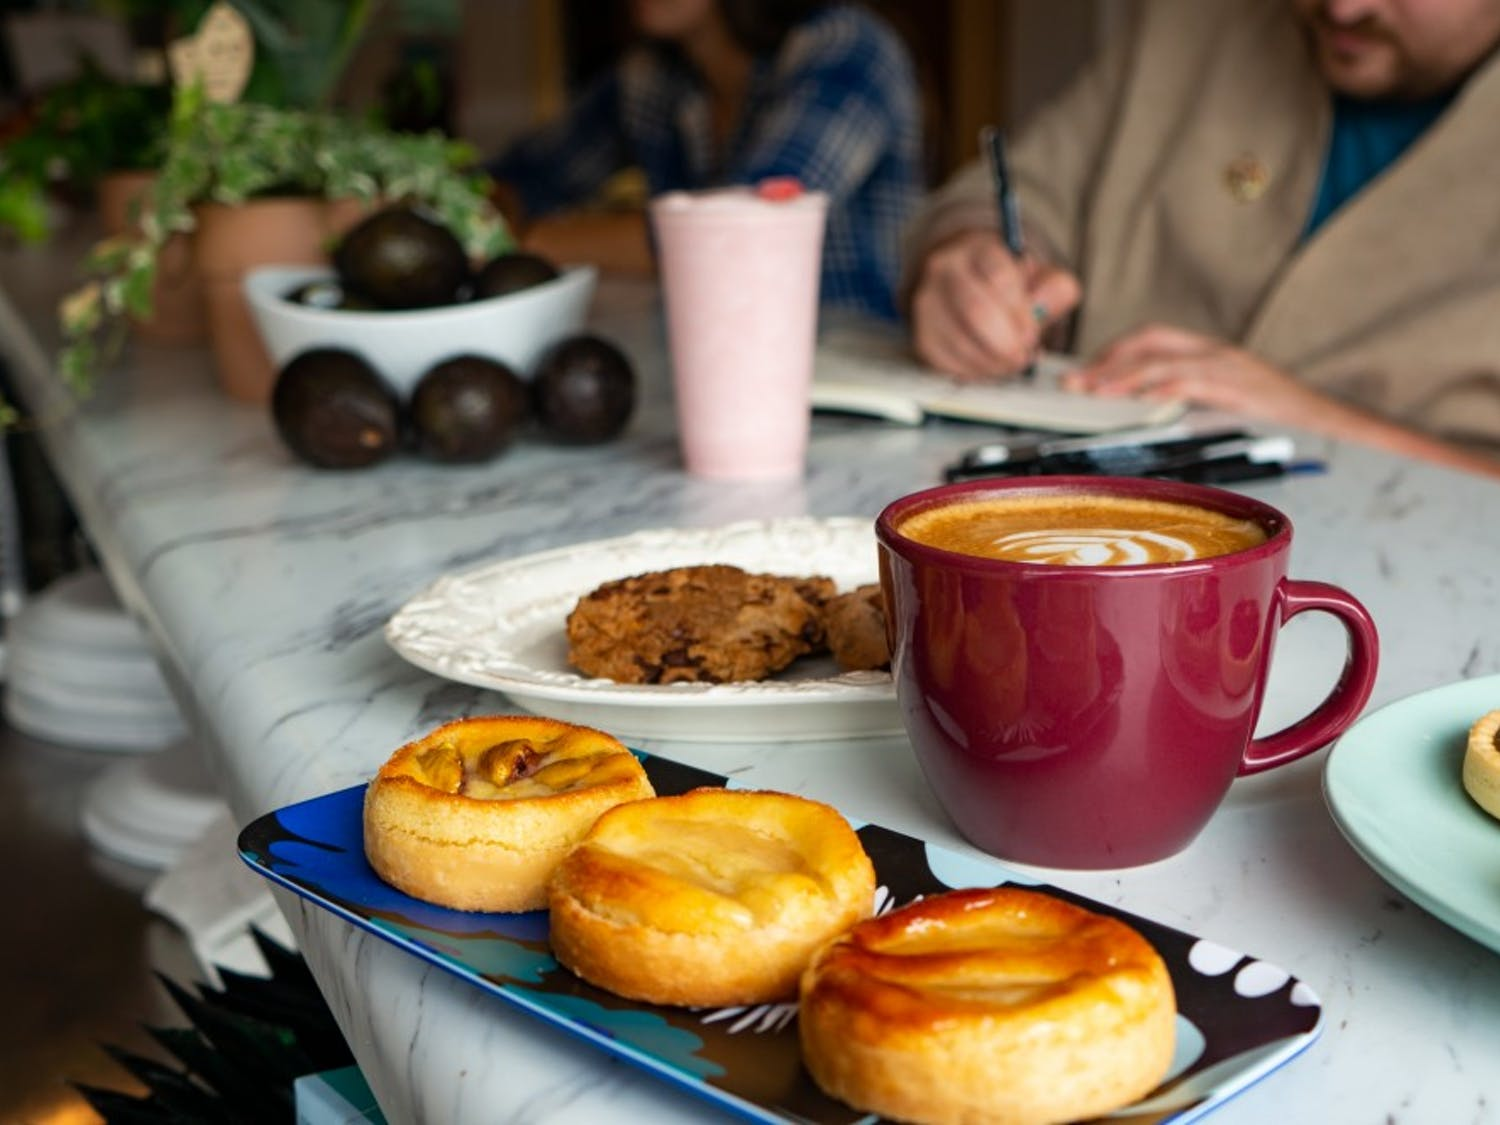 Homemade pastries and coffee sit on the counter of Three Waters Café on Wednesday, Oct. 9, 2019. Three Waters Café just opened recently on Franklin Street.